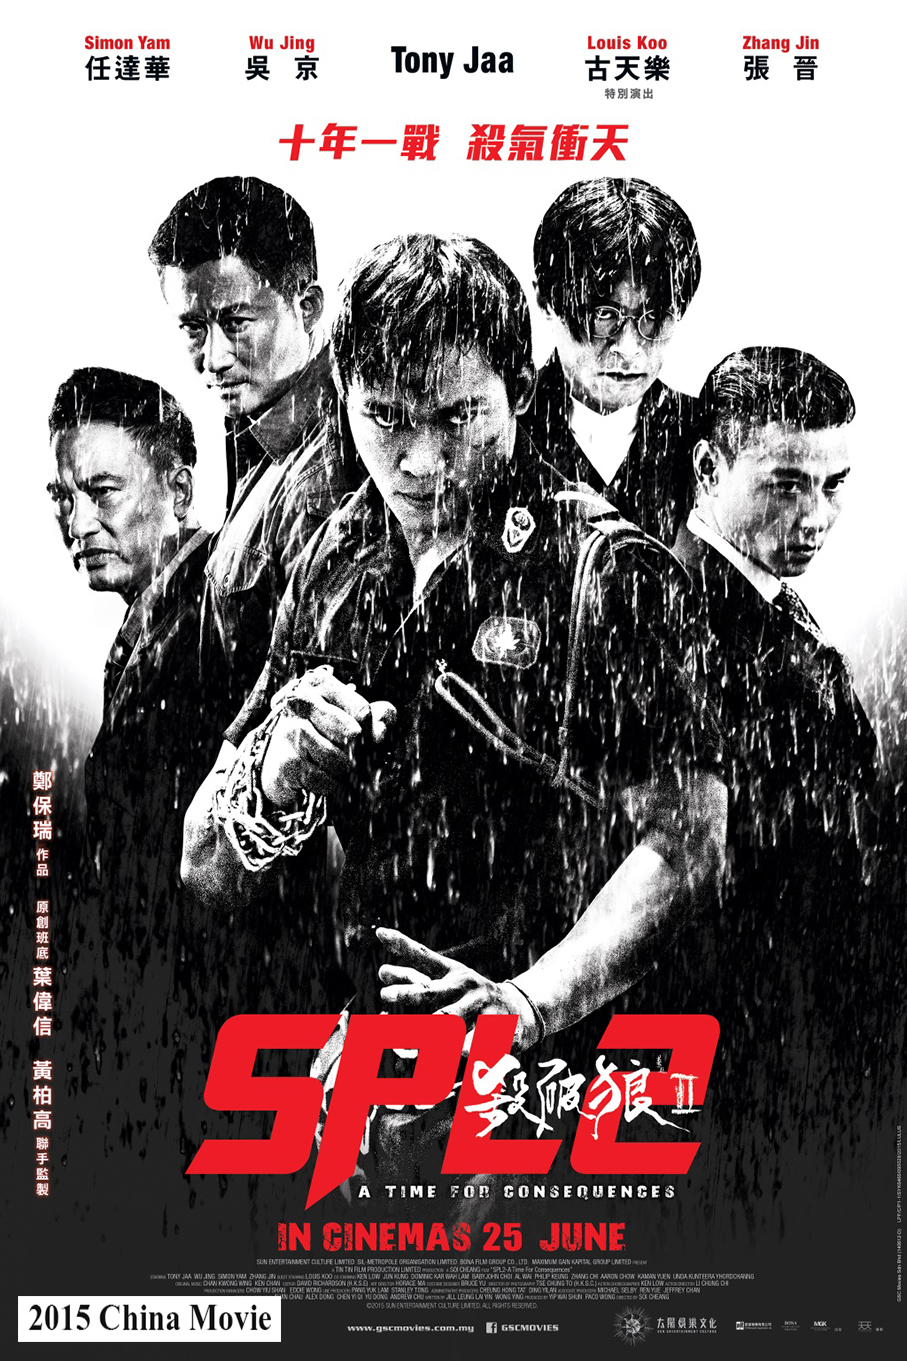 SPL 2 A Time for Consequences [2015 China Movie]